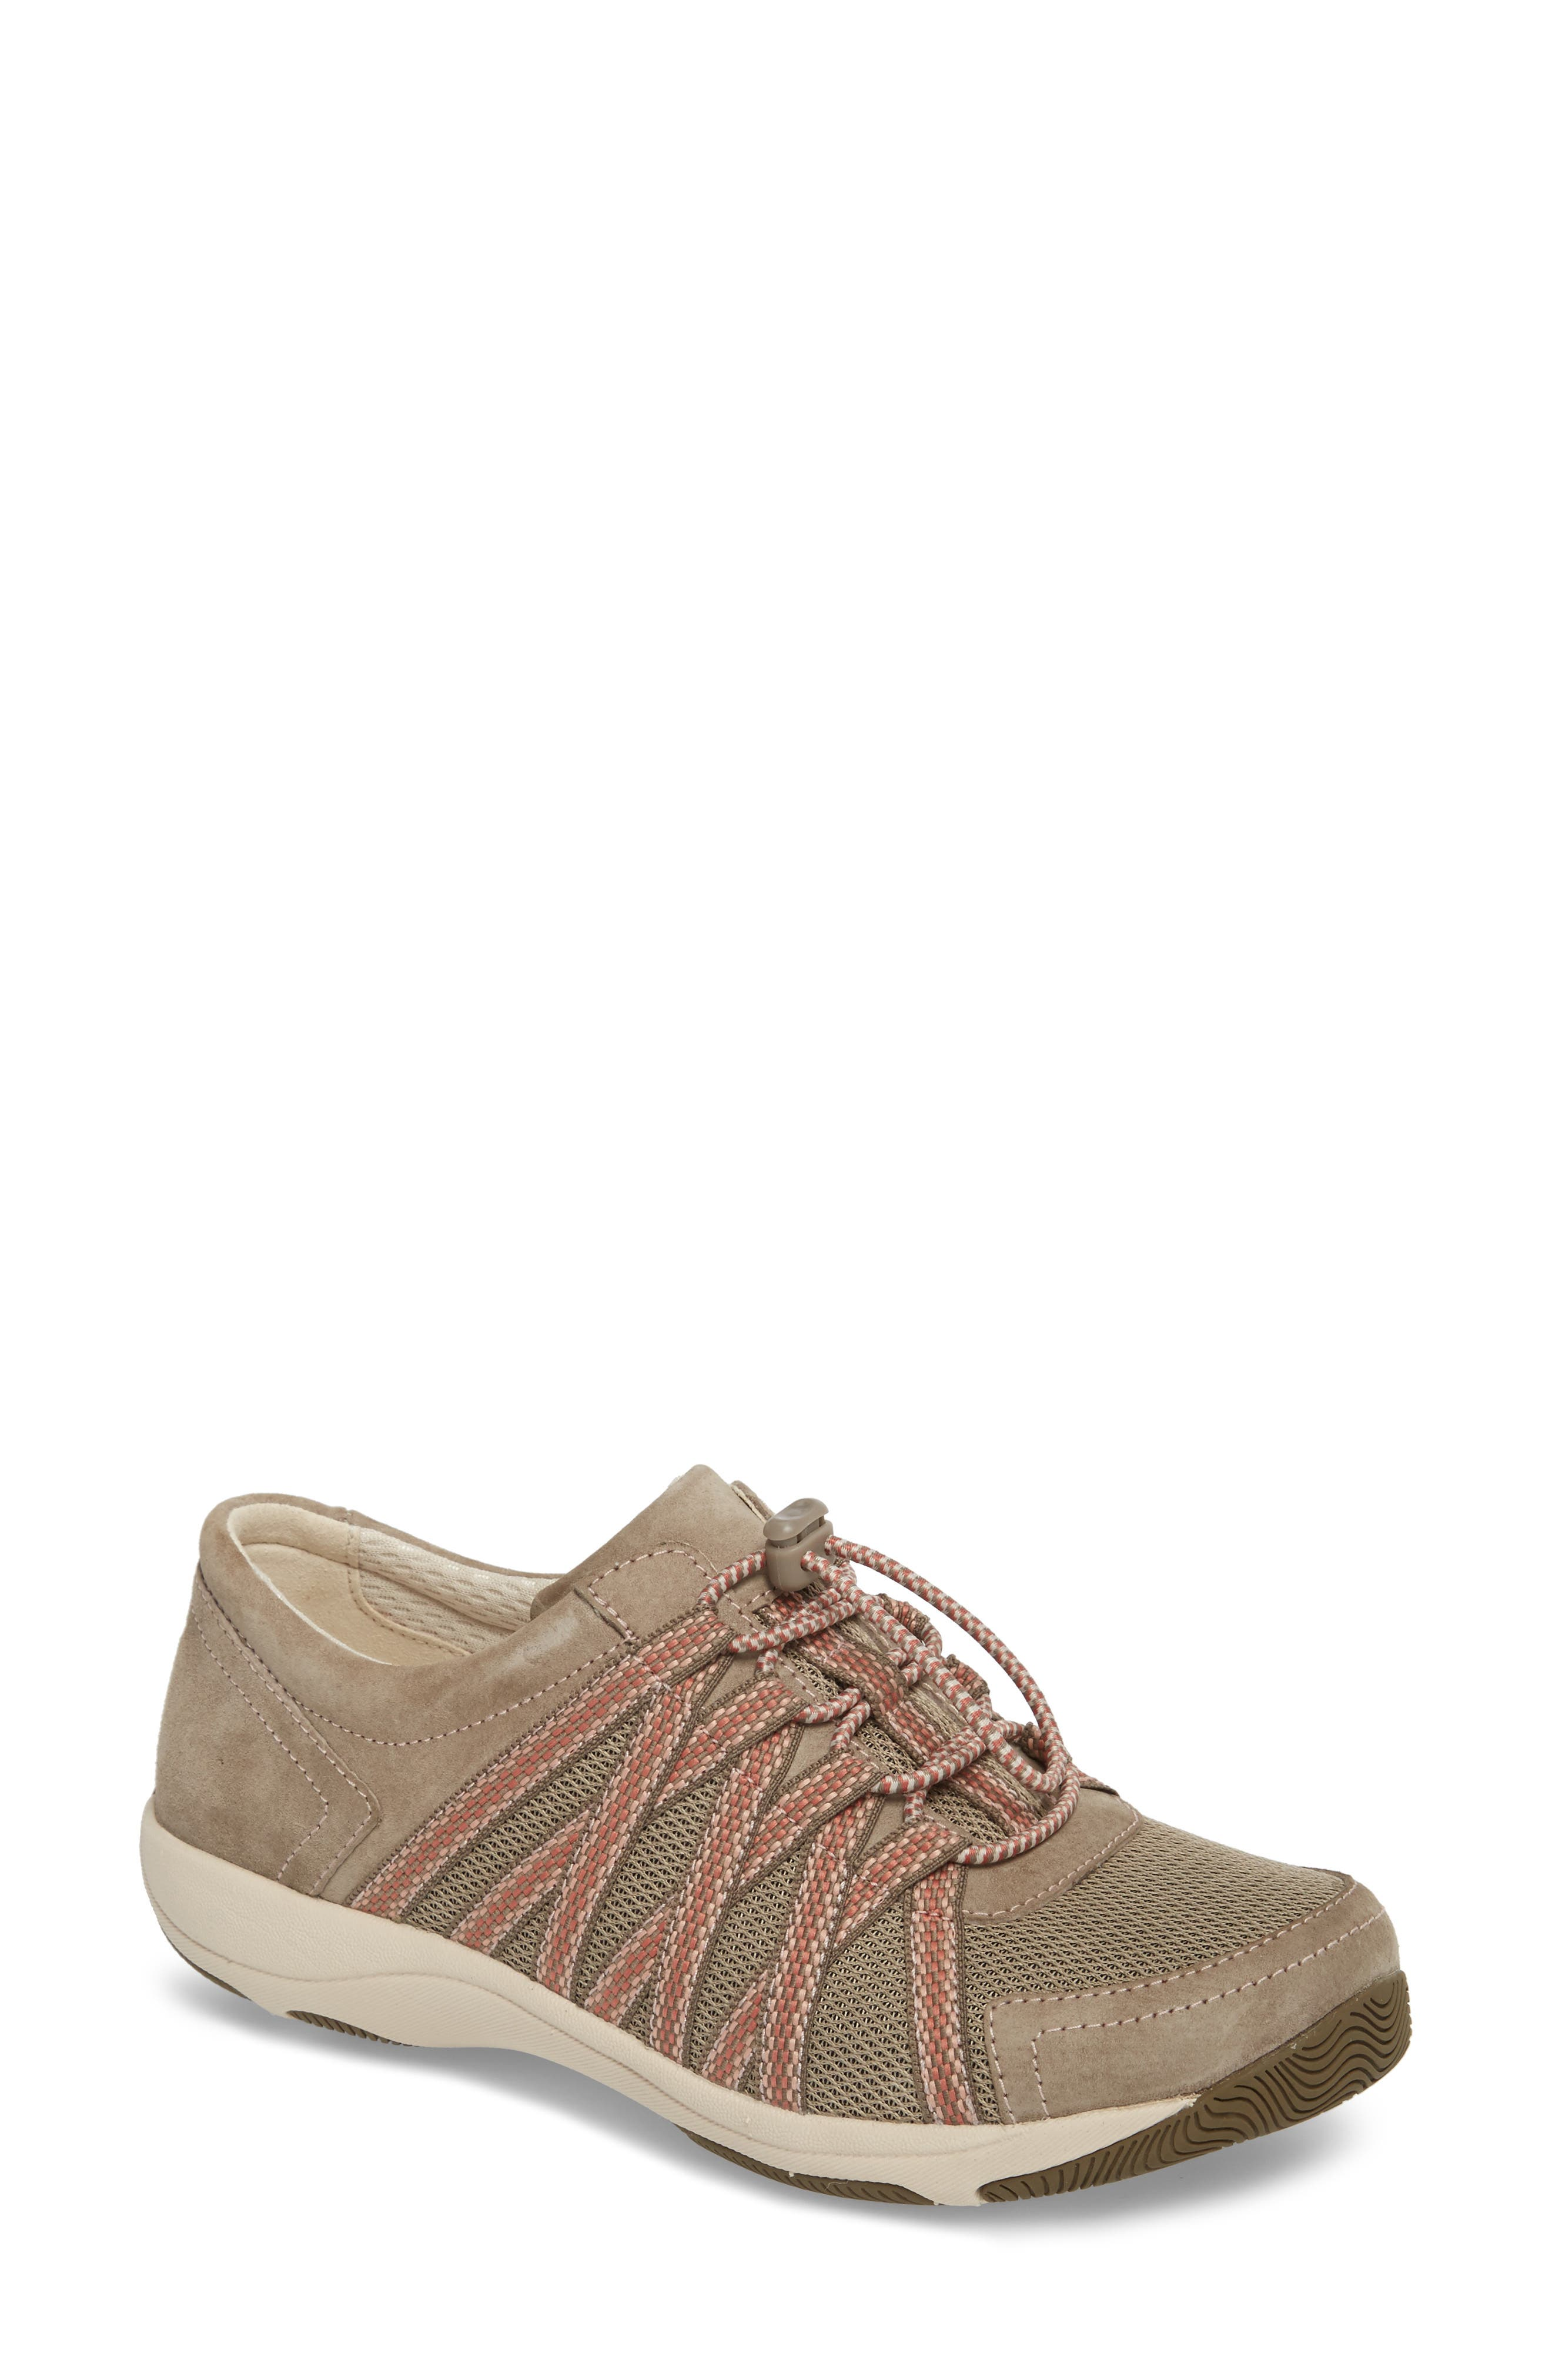 Halifax Collection Honor Sneaker,                             Main thumbnail 1, color,                             Walnut Suede